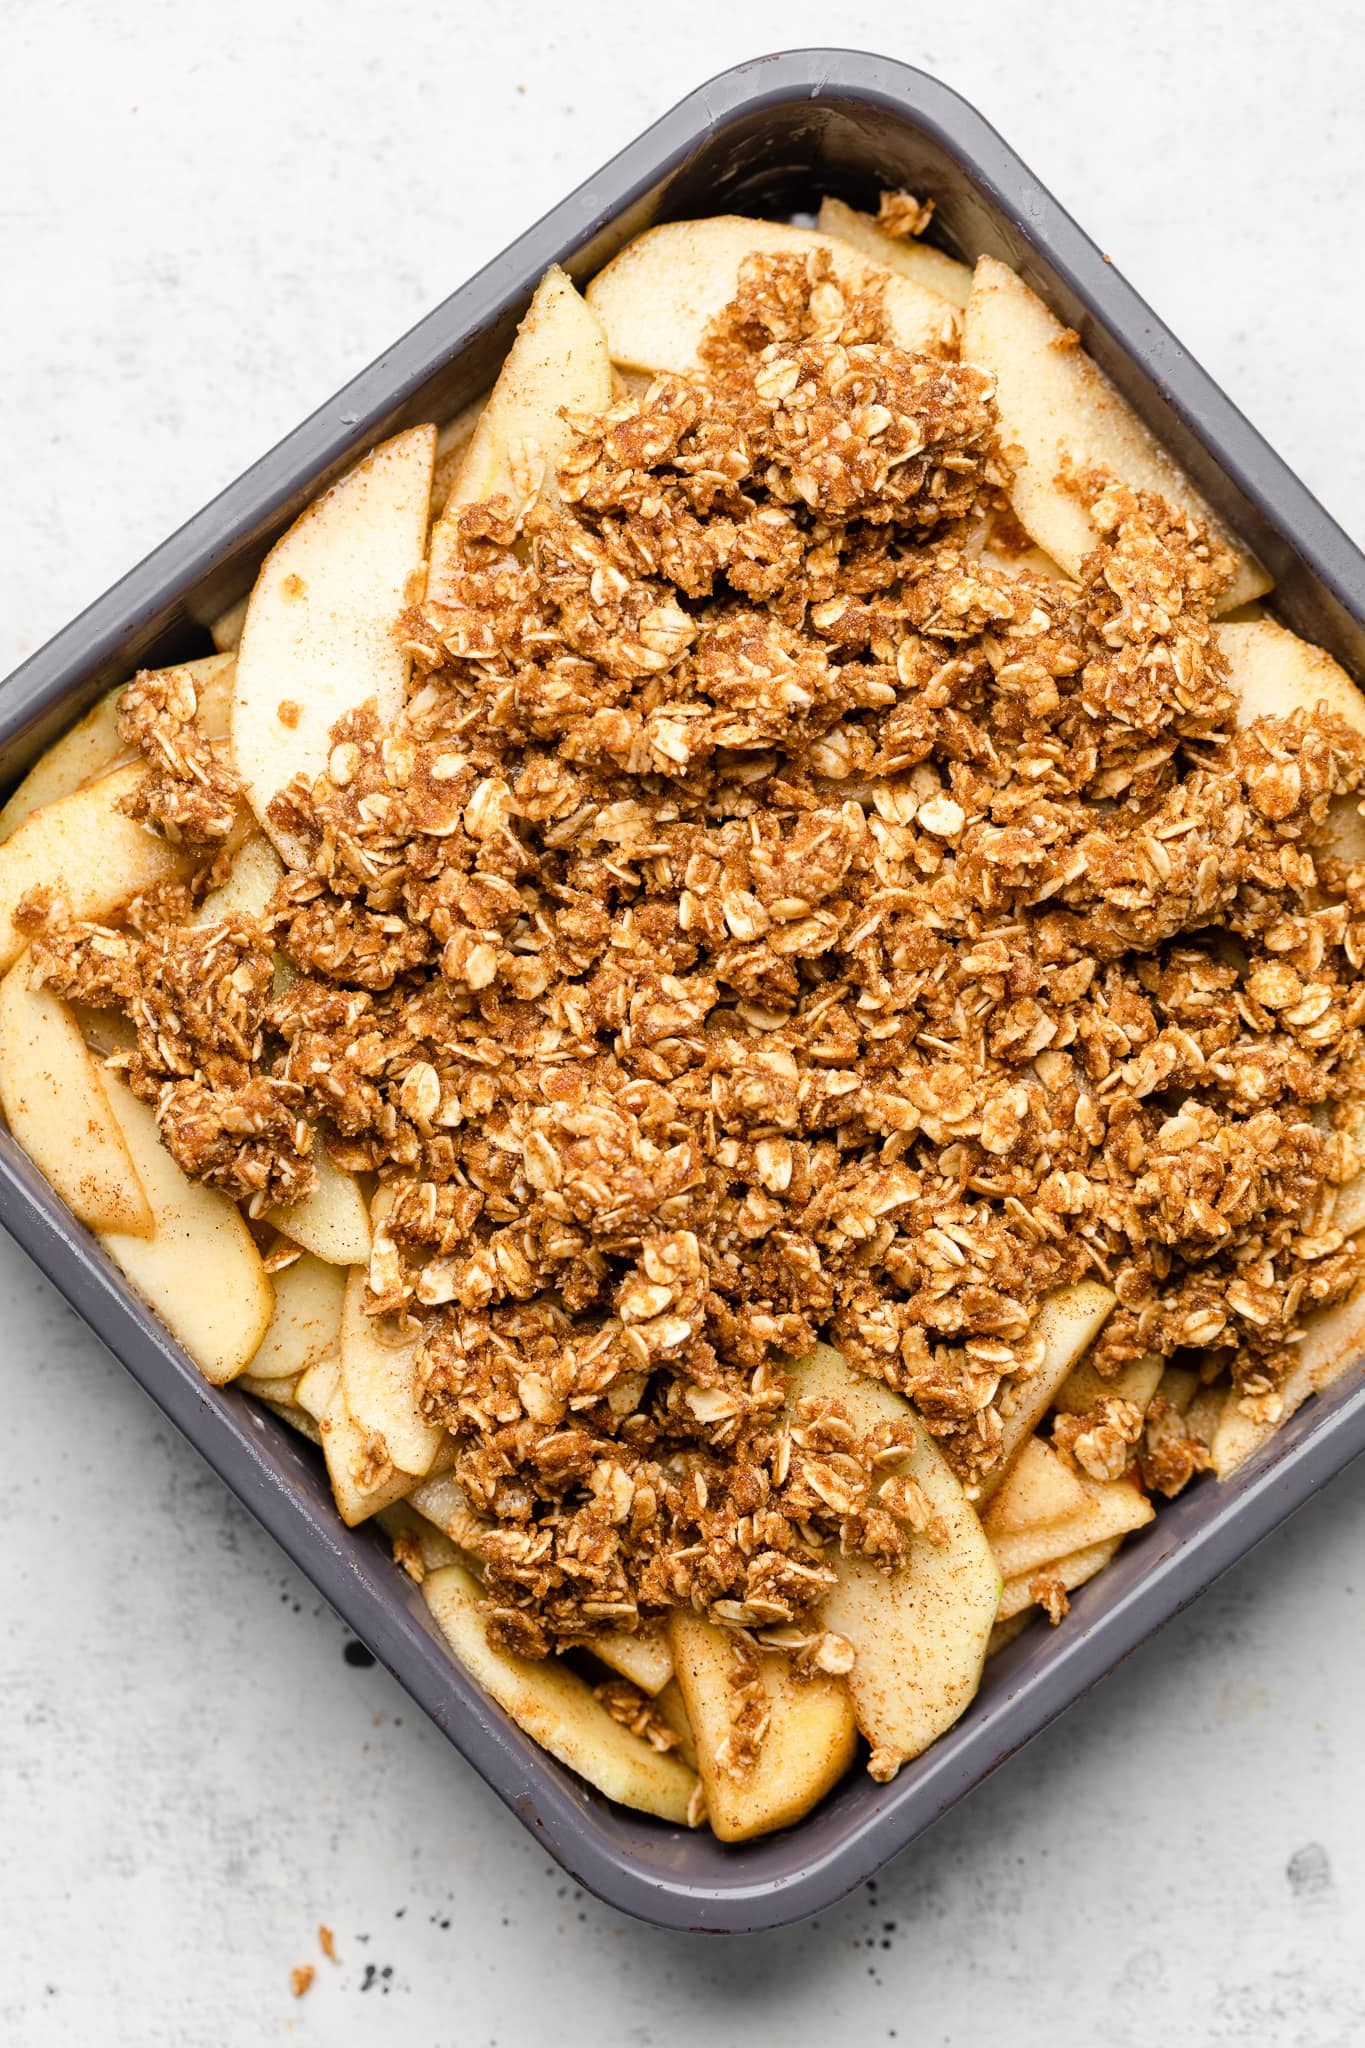 apple filling and apple crisp toping in a baking pan.